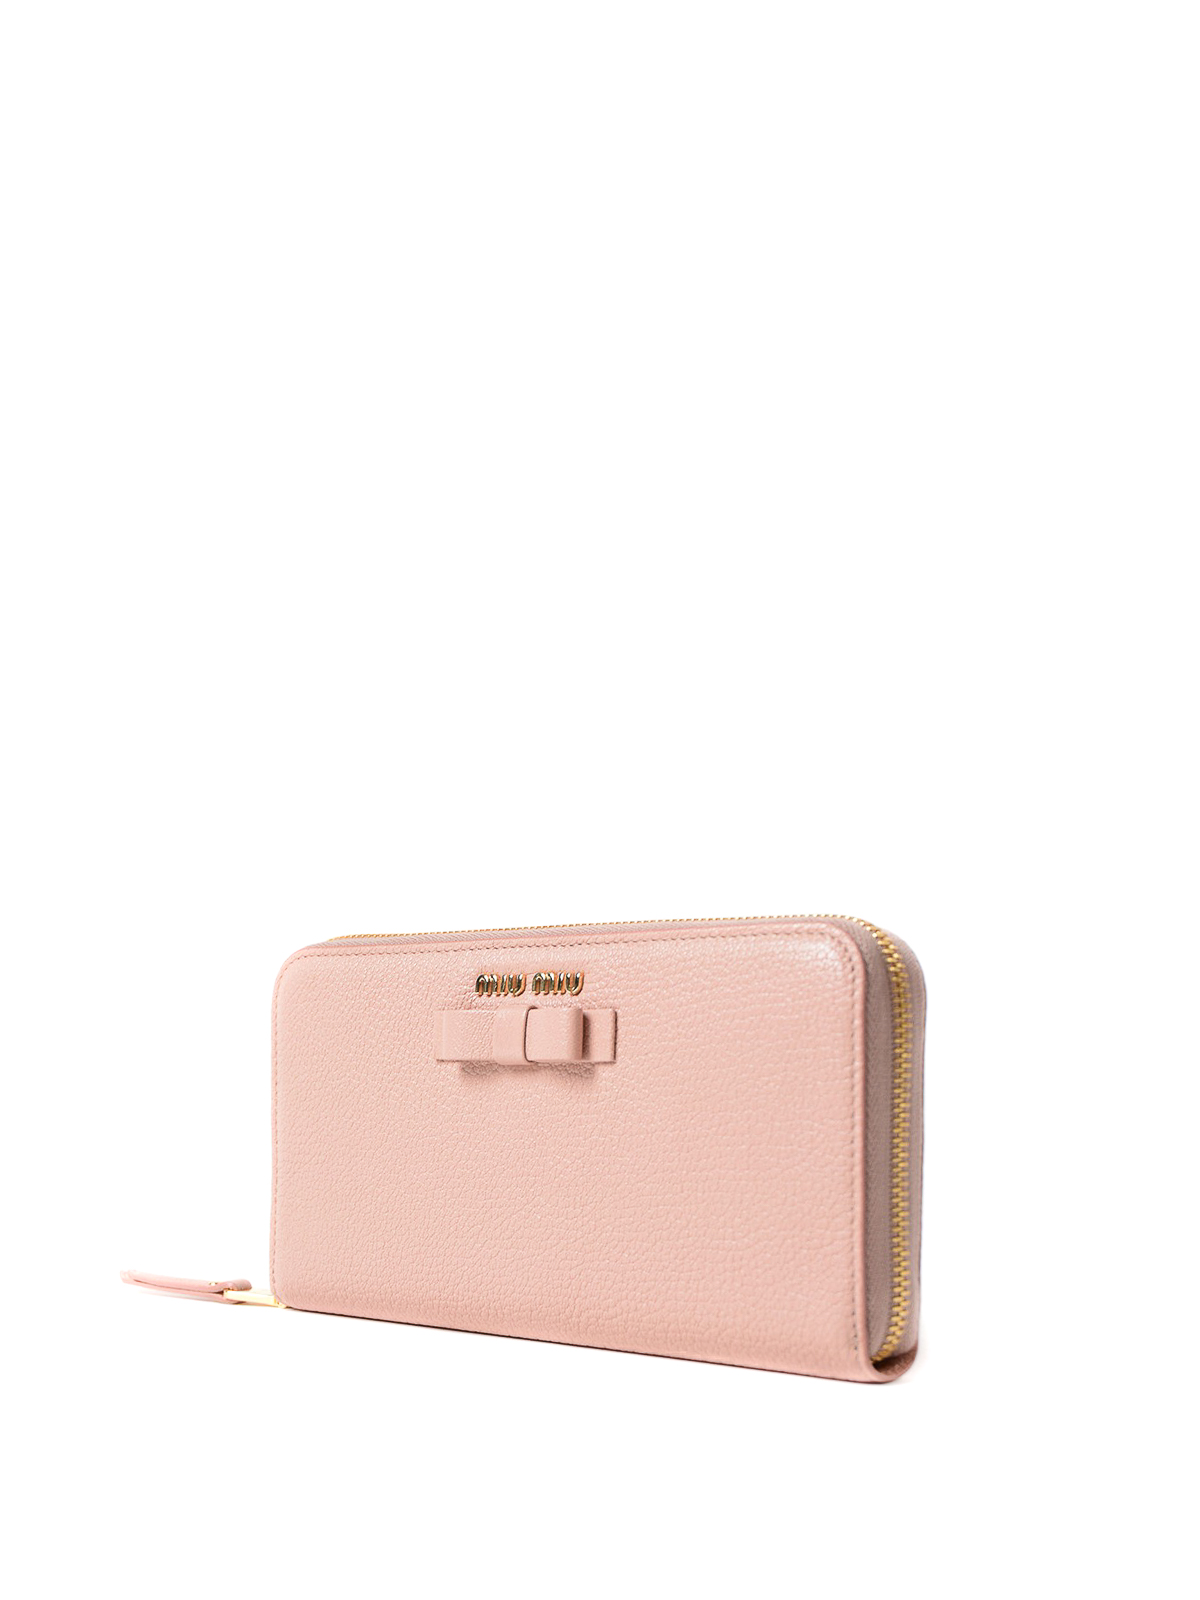 MIU MIU  wallets   purses online - Leather zip around wallet with bow b6603f623c737